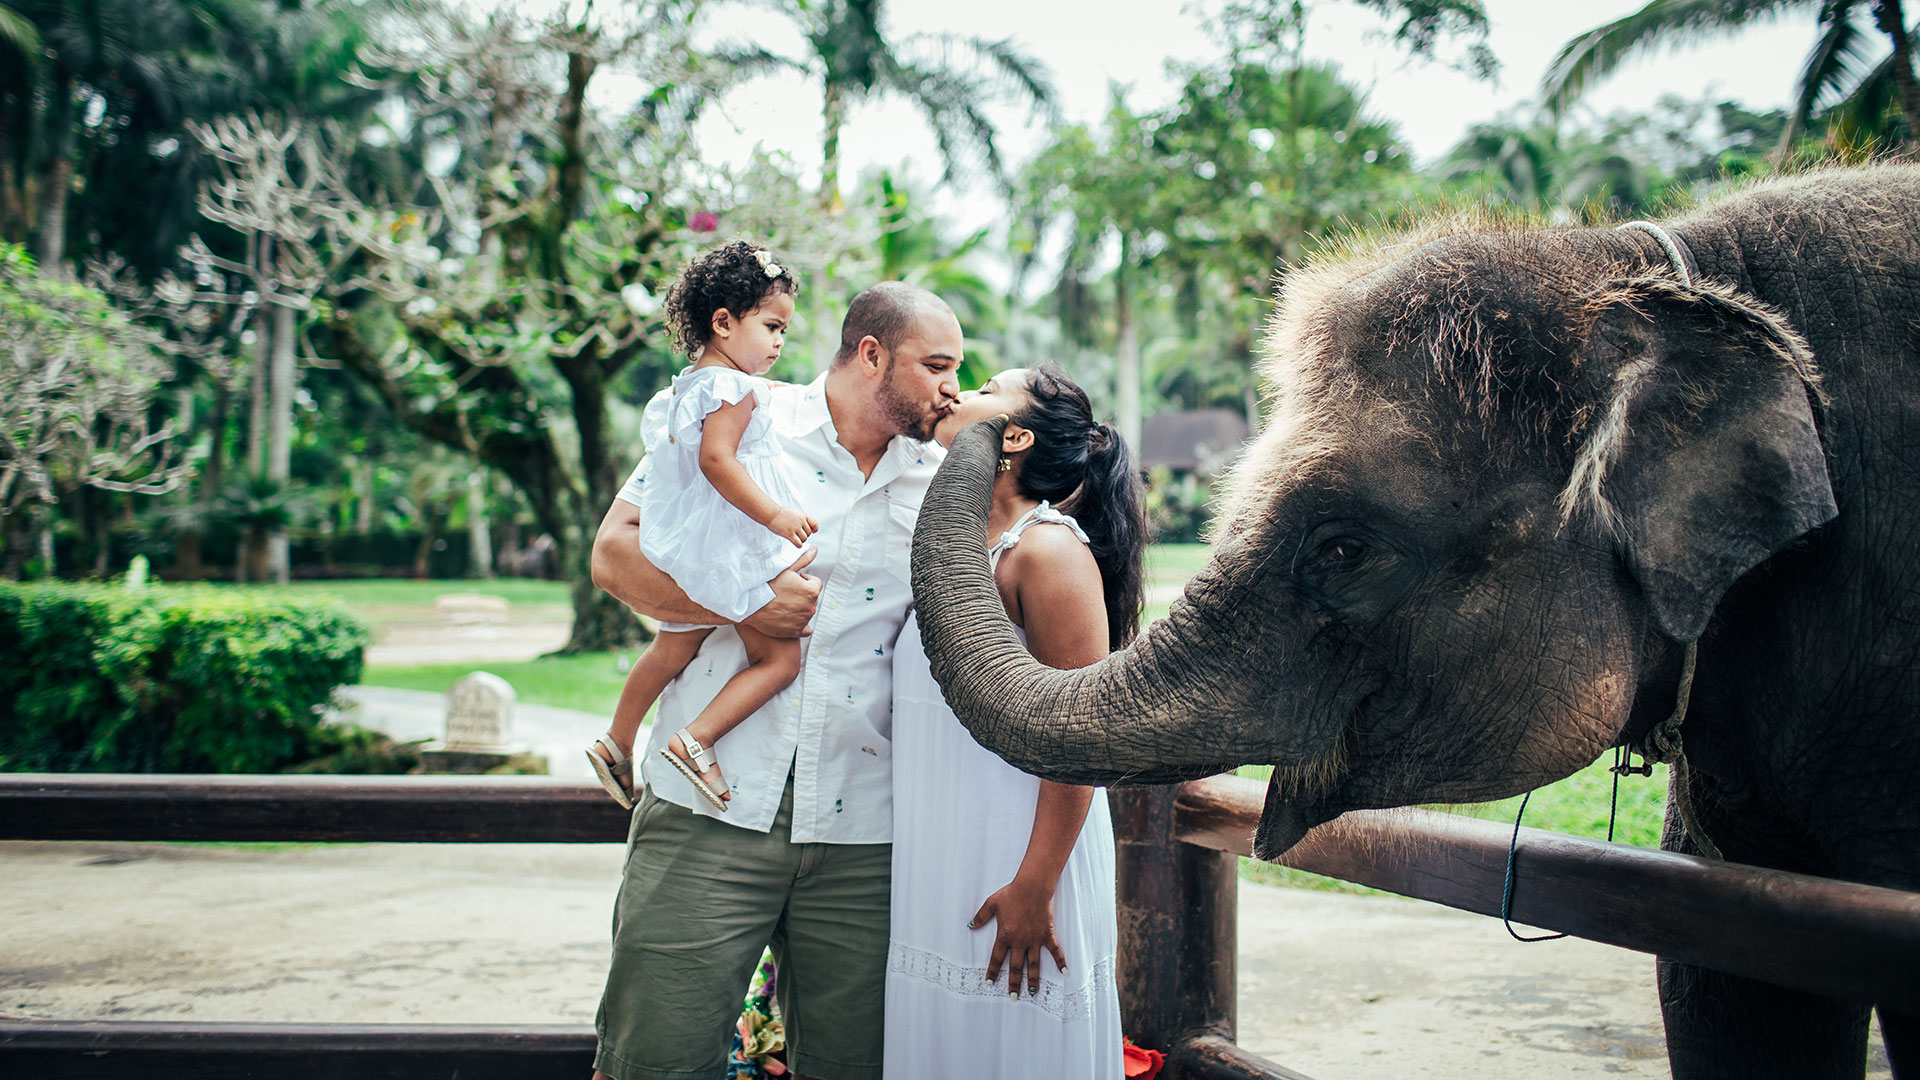 Angelica, her husband, and her 4 years old sweet daughter were on holiday in bali for 1 week. They wanted to have special memories with elephant...